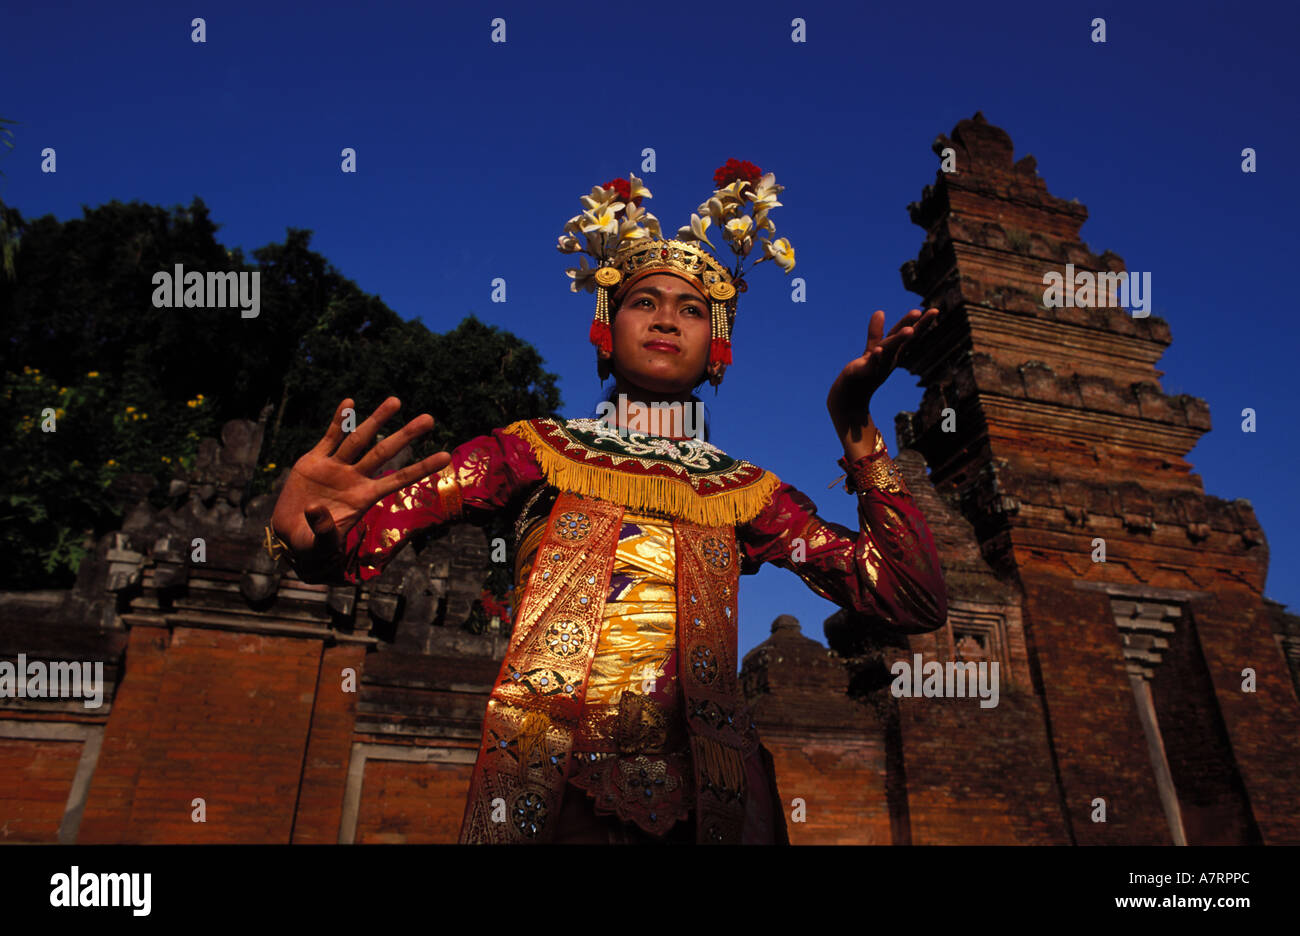 Indonesia, Bali island, Legong dancer in front of temple Batukau Odalan - Stock Image